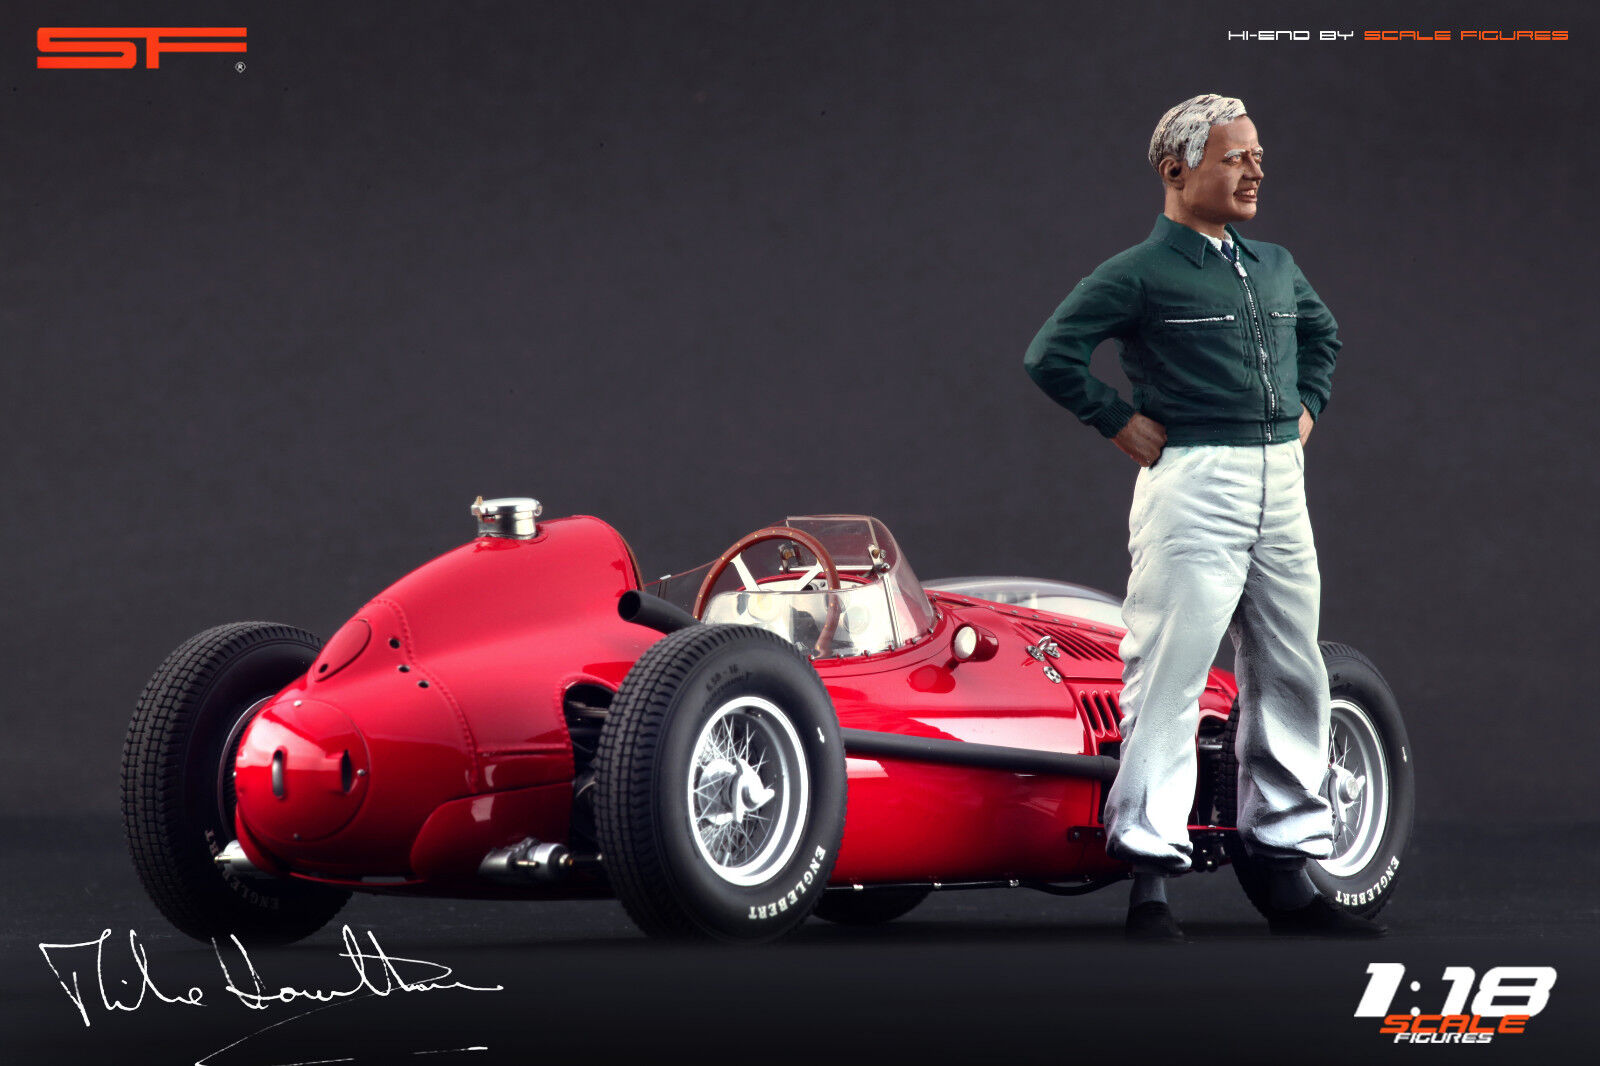 1 18 Mike Hawthorn figurine VERY RARE    NO CARS    for diecast collectors